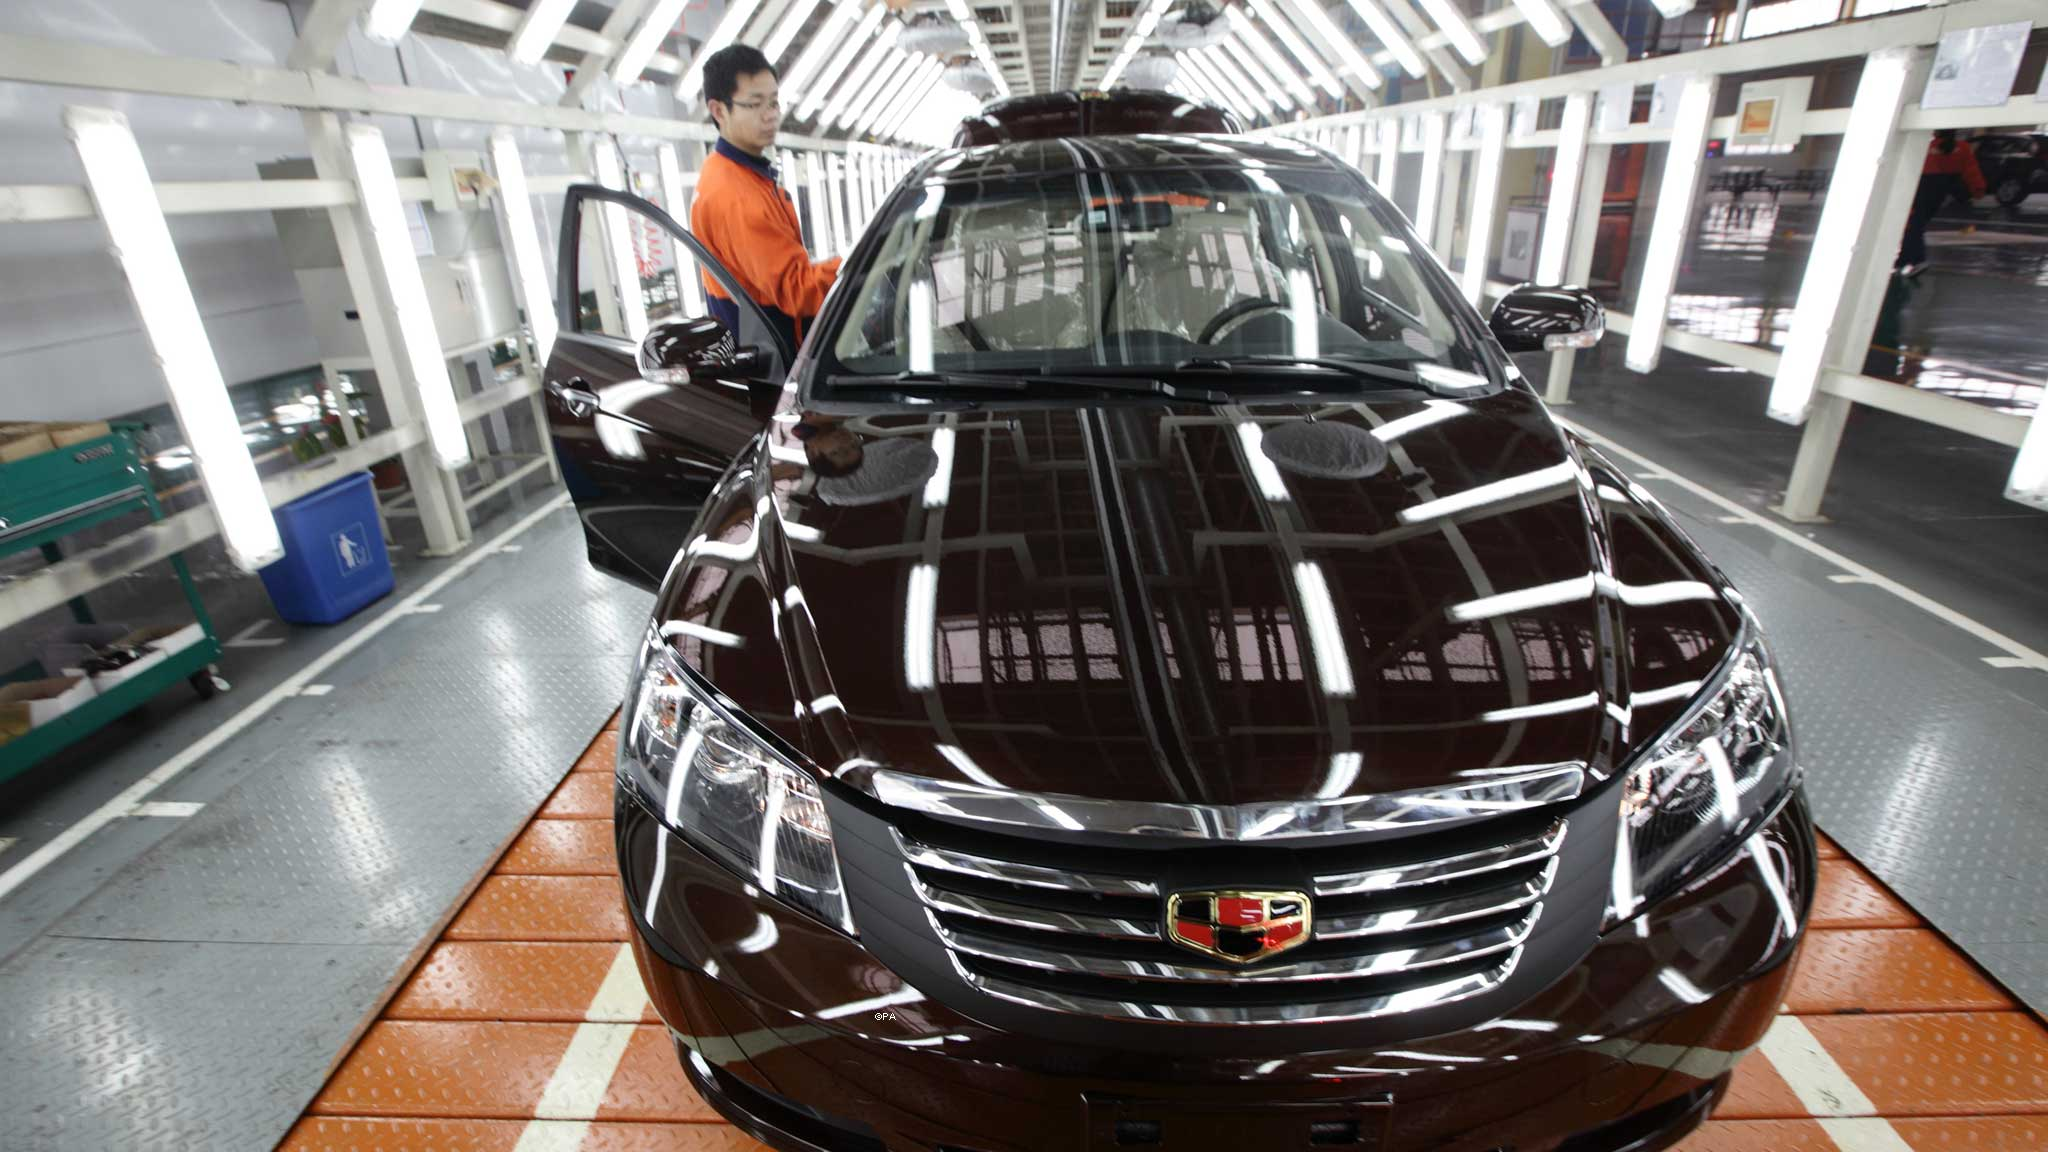 Geely Buys a Nearly 10 Percent Stake in Germany's Daimler ... on cars in toronto, cars in japan, cars in delhi, cars dubai, cars in karachi, cars in macau, cars in djibouti, cars in india, cars in luanda, cars in hong kong, cars in ottawa, cars in egypt, cars uae, cars in cape town, cars in thailand, cars in norway, cars in jerusalem, cars in kazakhstan, cars in copenhagen, cars in los angeles,